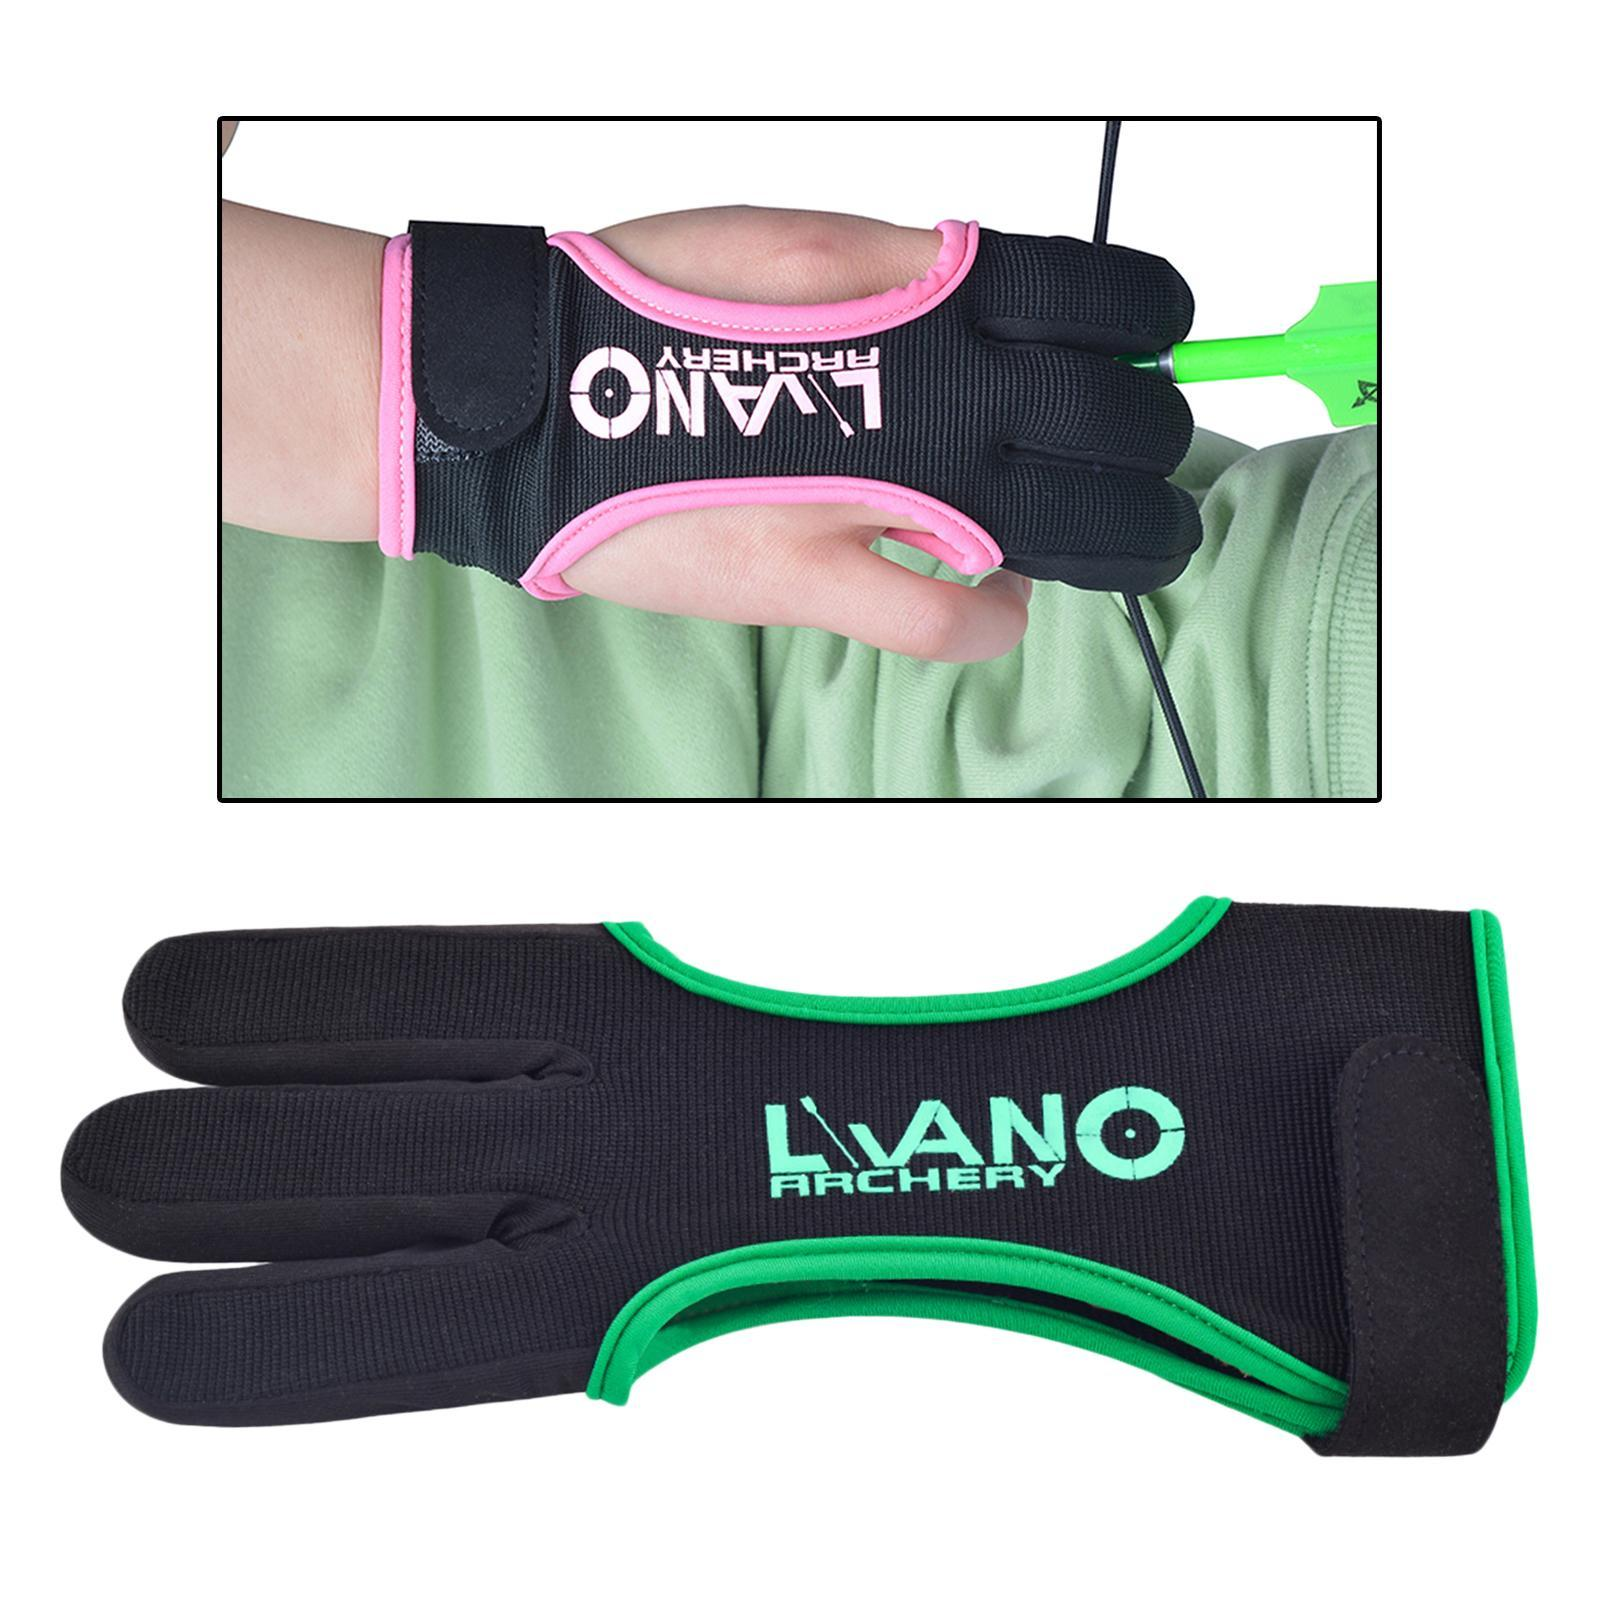 thumbnail 23 - Archery Glove for Recurve Compound Bow 3Finger Leather Guard for Women Men Youth